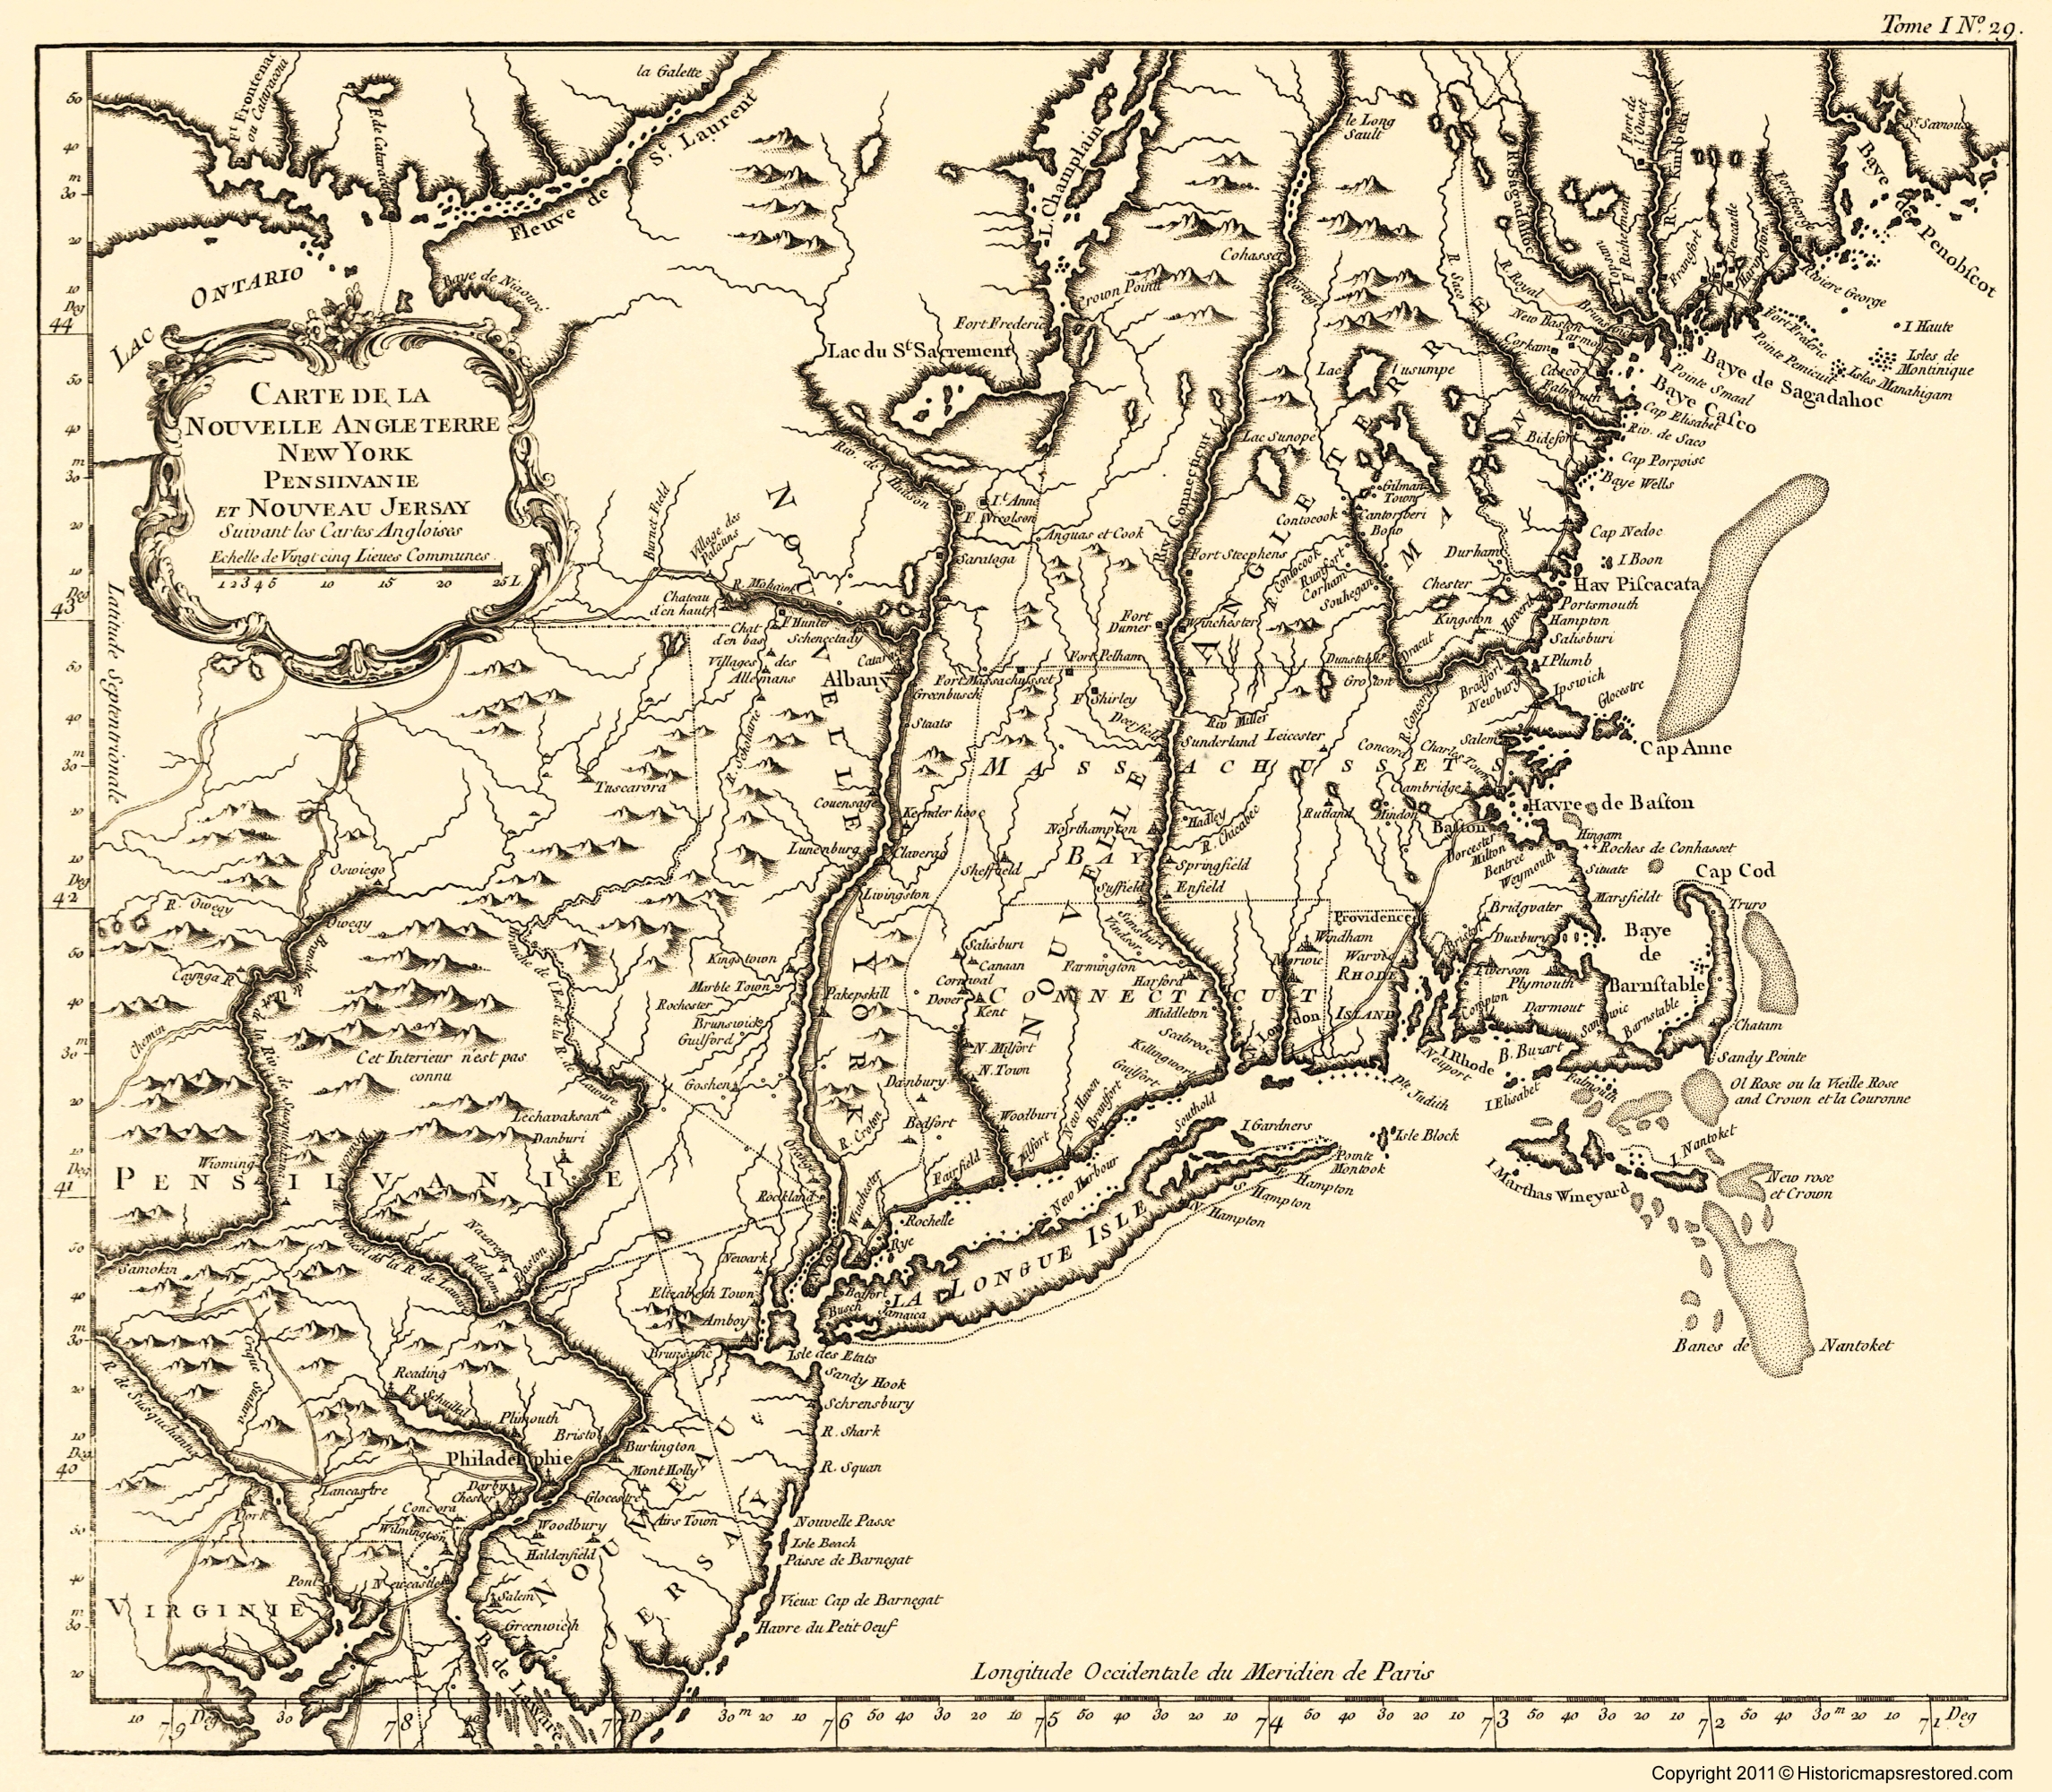 Old War Map New York Pennsylvania And New Jersey - New york jersey map